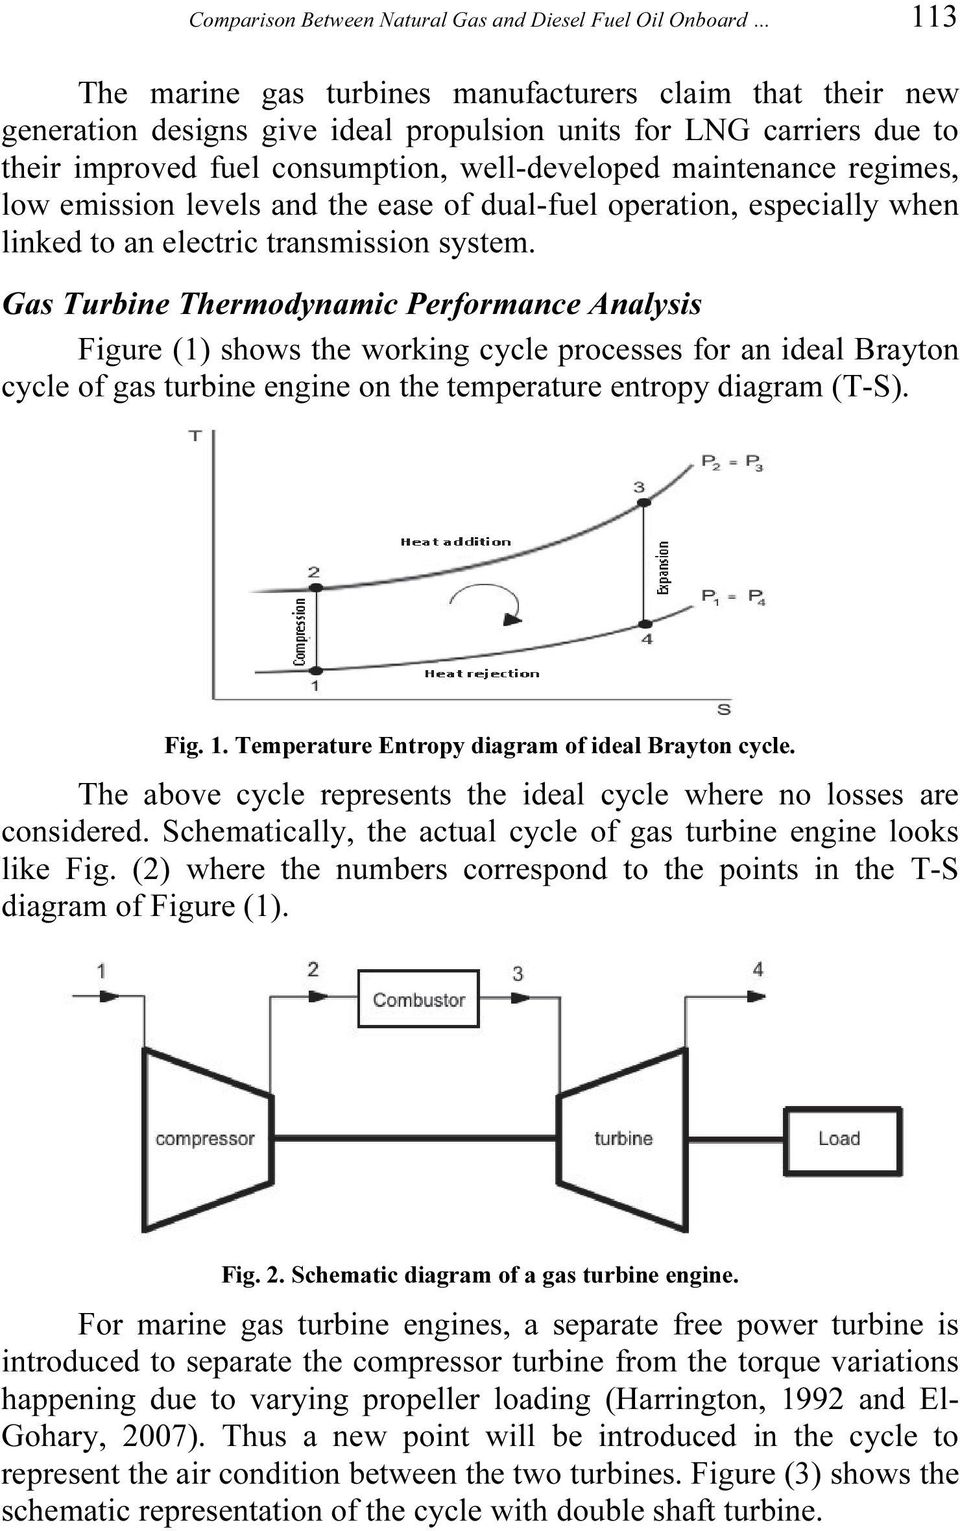 Comparison Between Natural Gas And Diesel Fuel Oil Onboard 2 Stroke Engine Pv Diagram Turbine Thermodynamic Performance Analysis Figure 1 Shows The Working Cycle Processes For An